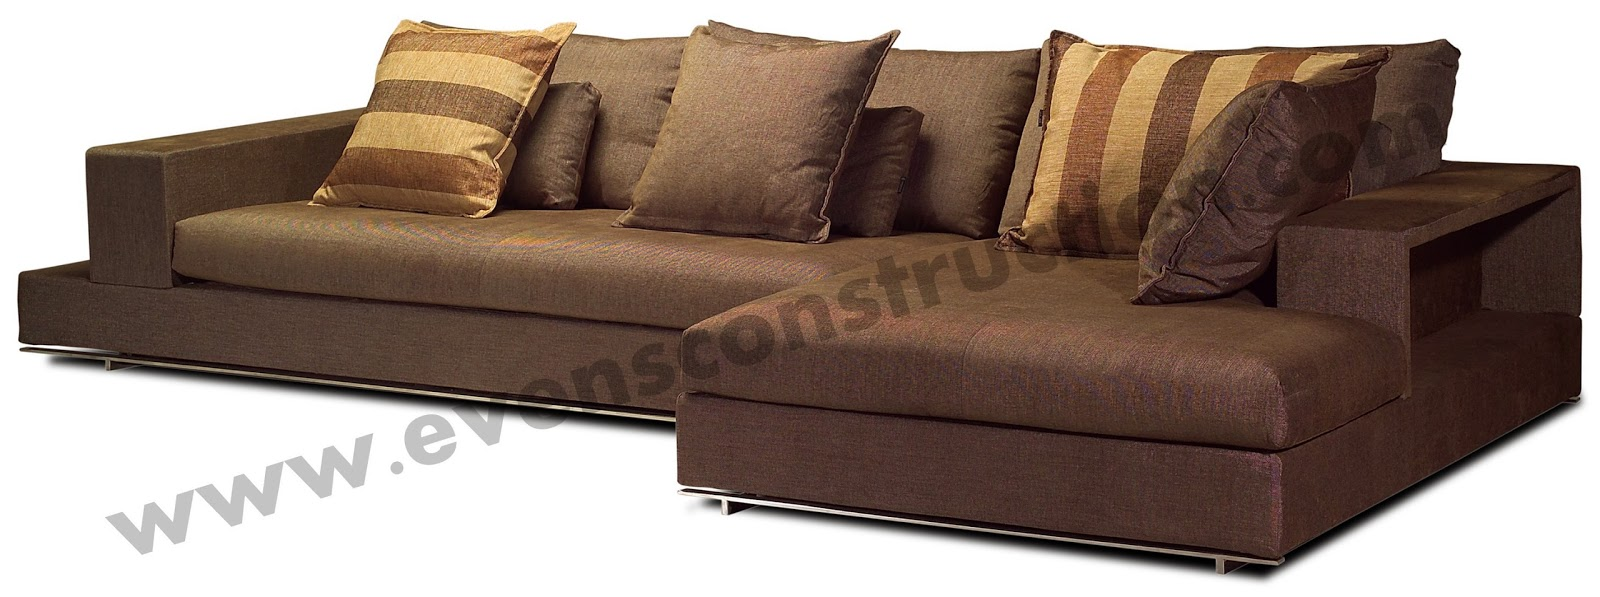 Best designer sleeper sofas sofa design for Designer furniture sofa